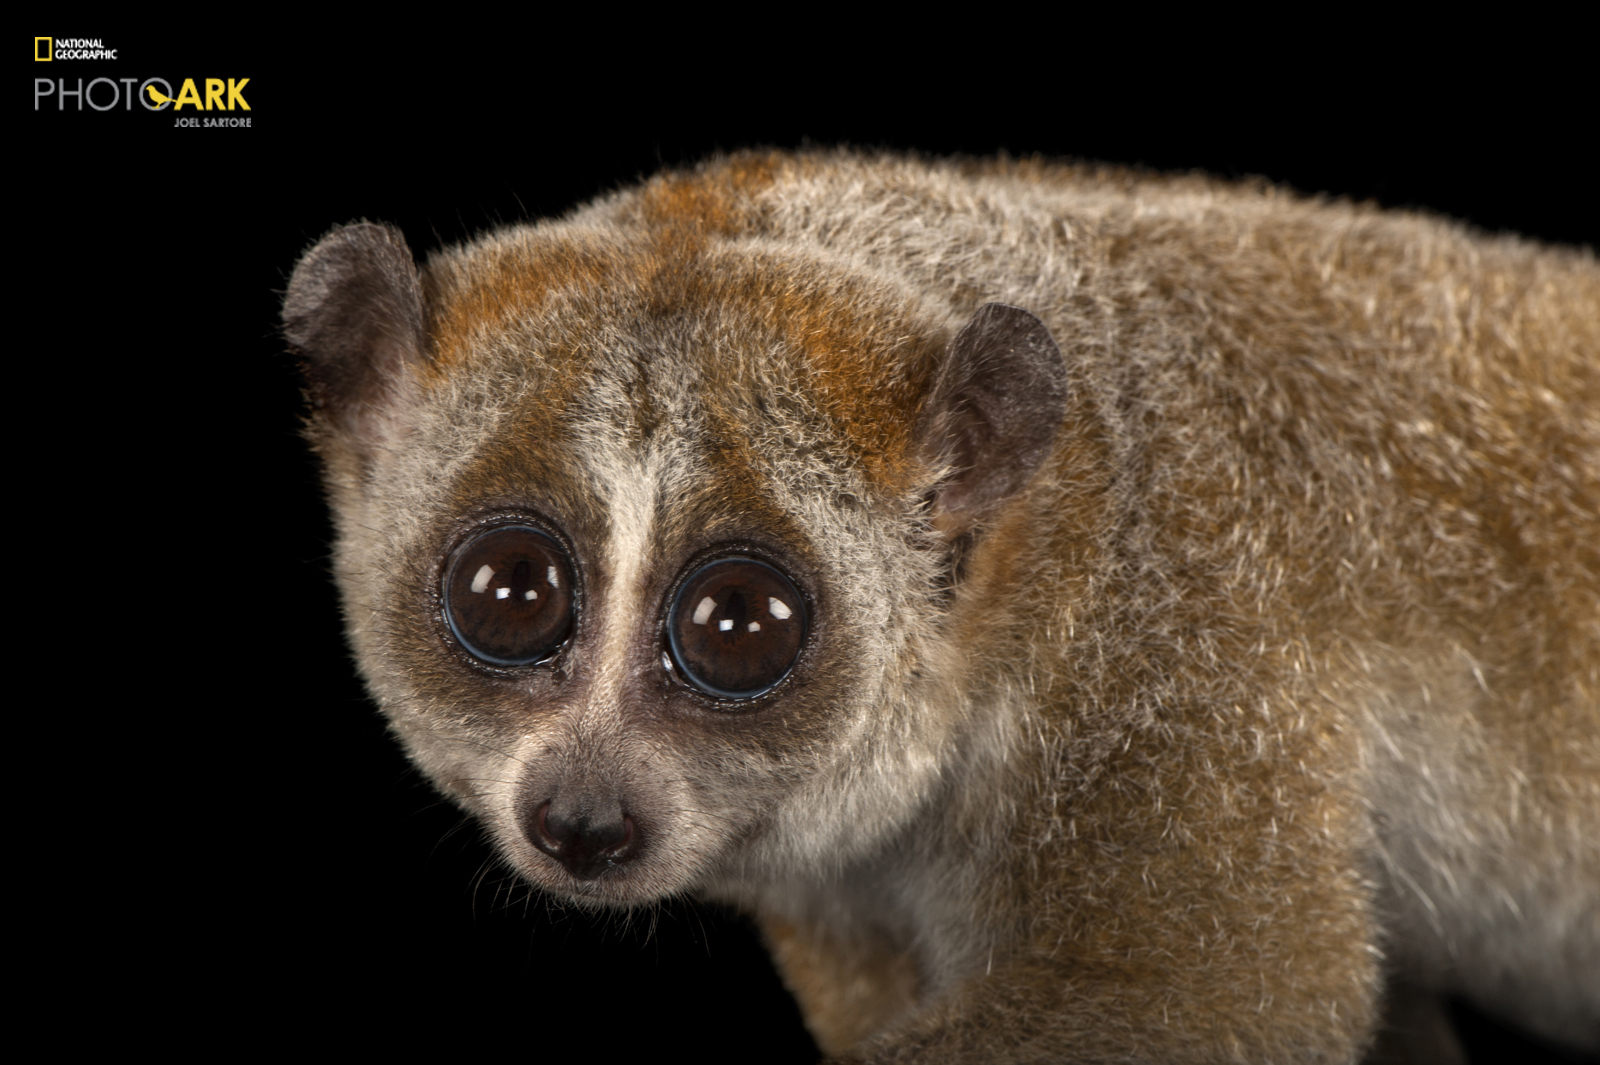 A pygmy slow loris, Nycticebus pygmaeus, at Omaha's Henry Doorly Zoo and Aquarium                                 natgeophotoark.org